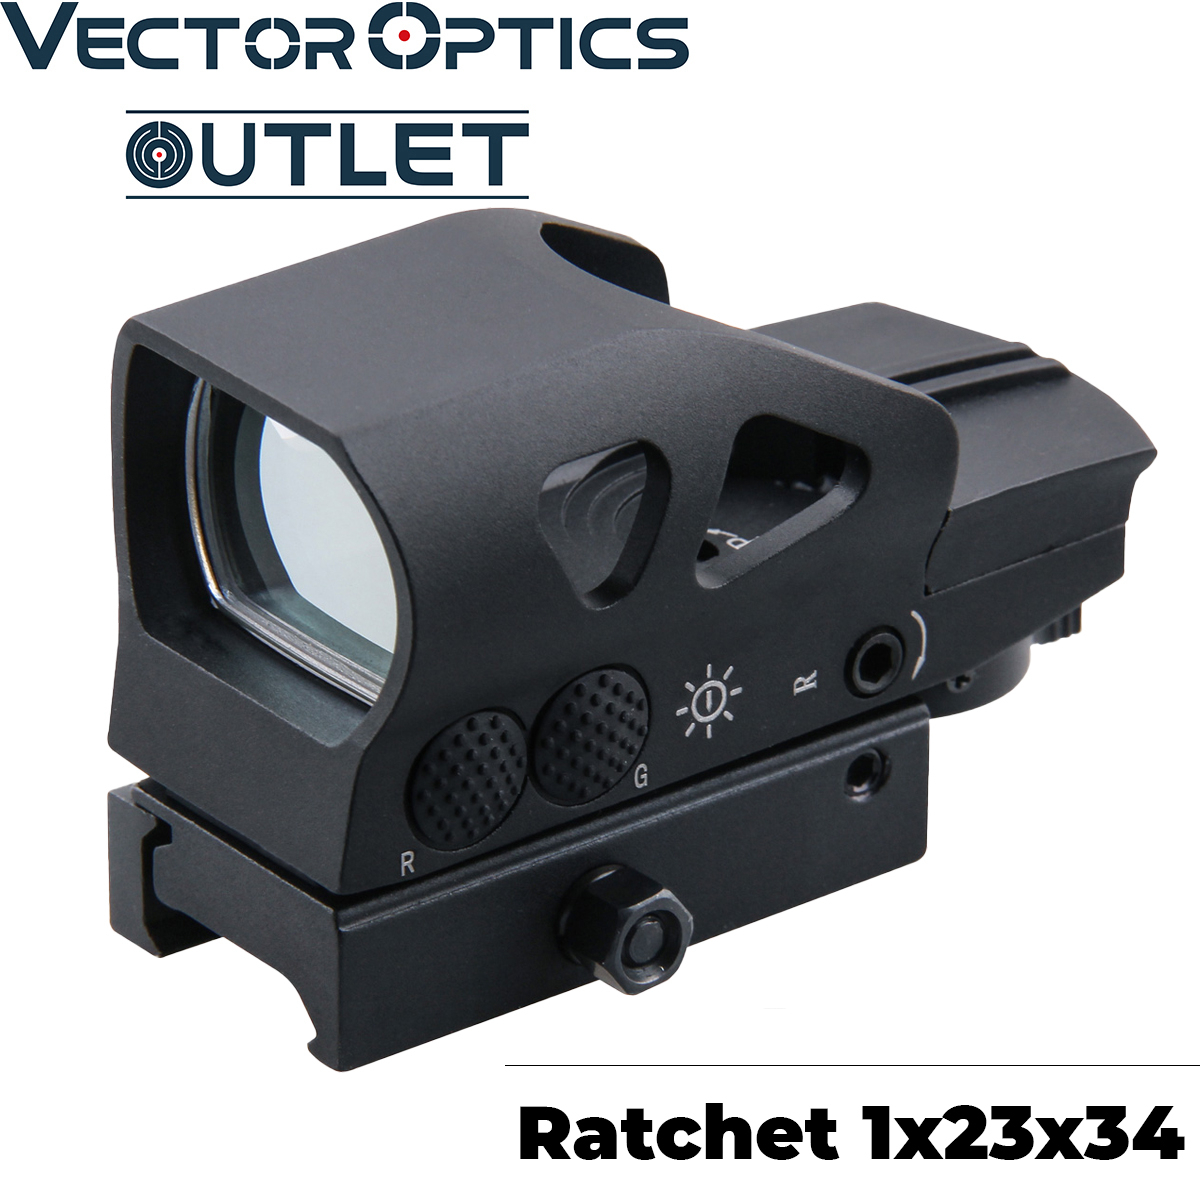 Vector Optics Ratchet 1x23x34 Multi 4 Reticle Red Dot Scope 